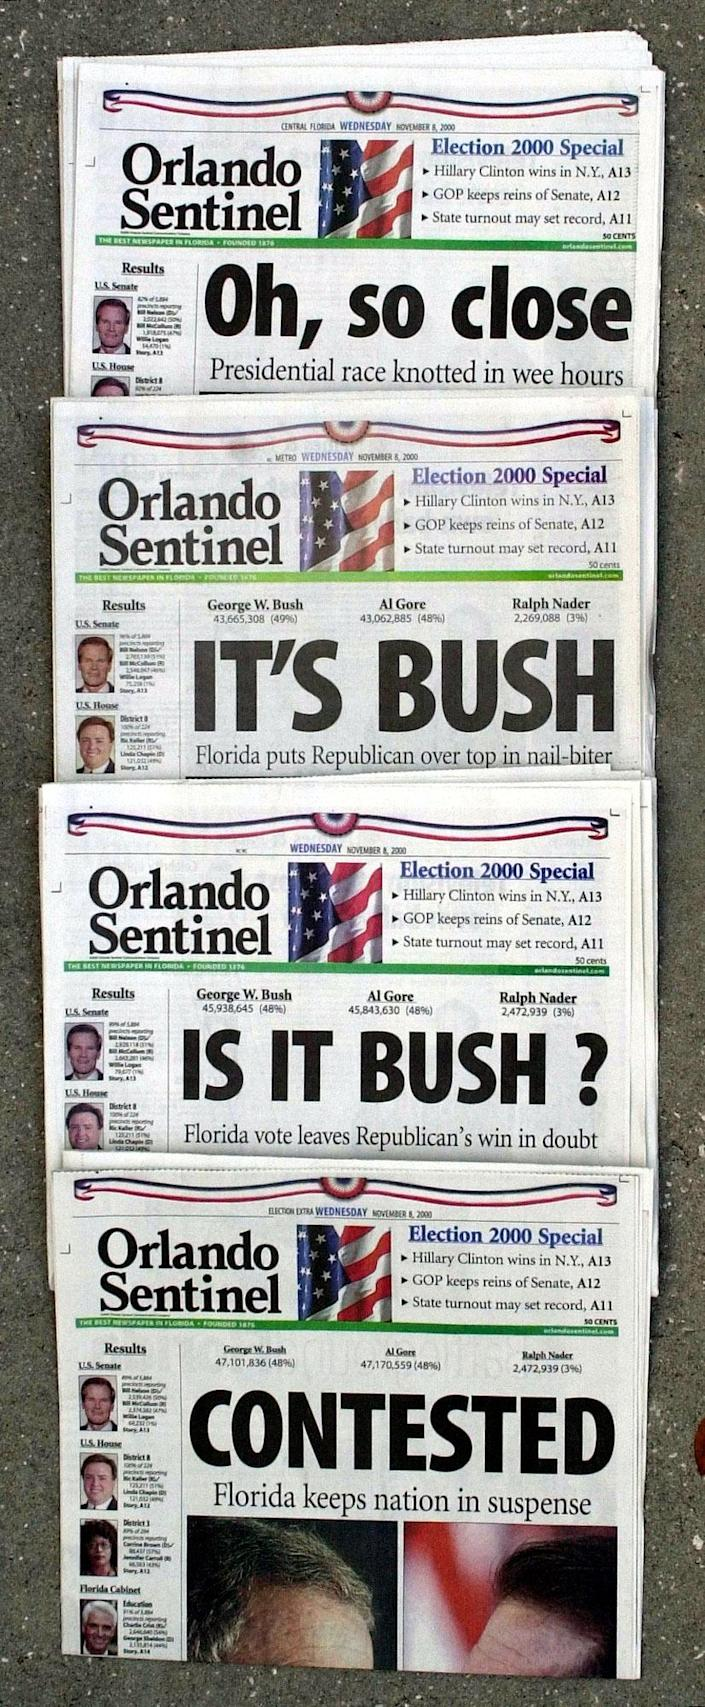 """FILE - This Nov. 8, 2000 file photo shows Orlando Sentinel election night headlines The first headline was, """"Oh, so close,"""" followed by """"IT'S BUSH,"""" then """"IS IT BUSH?"""" and lastly """"CONTESTED."""" The presidential election is still undecided while the nation waits for Florida's final vote count. The mere mention of the 2000 election unsettles people in Palm Beach County. The county's poorly designed """"butterfly ballot"""" confused thousands of voters, arguably costing Democrat Al Gore the state, and thereby the presidency. Gore won the national popular vote by more than a half-million ballots. But George W. Bush became president after the Supreme Court decided, 5-4, to halt further Florida recounts, more than a month after Election Day. Bush carried the state by 537 votes, enough for an Electoral College edge, and the White House. (AP Photo/Peter Cosgrove, File)"""